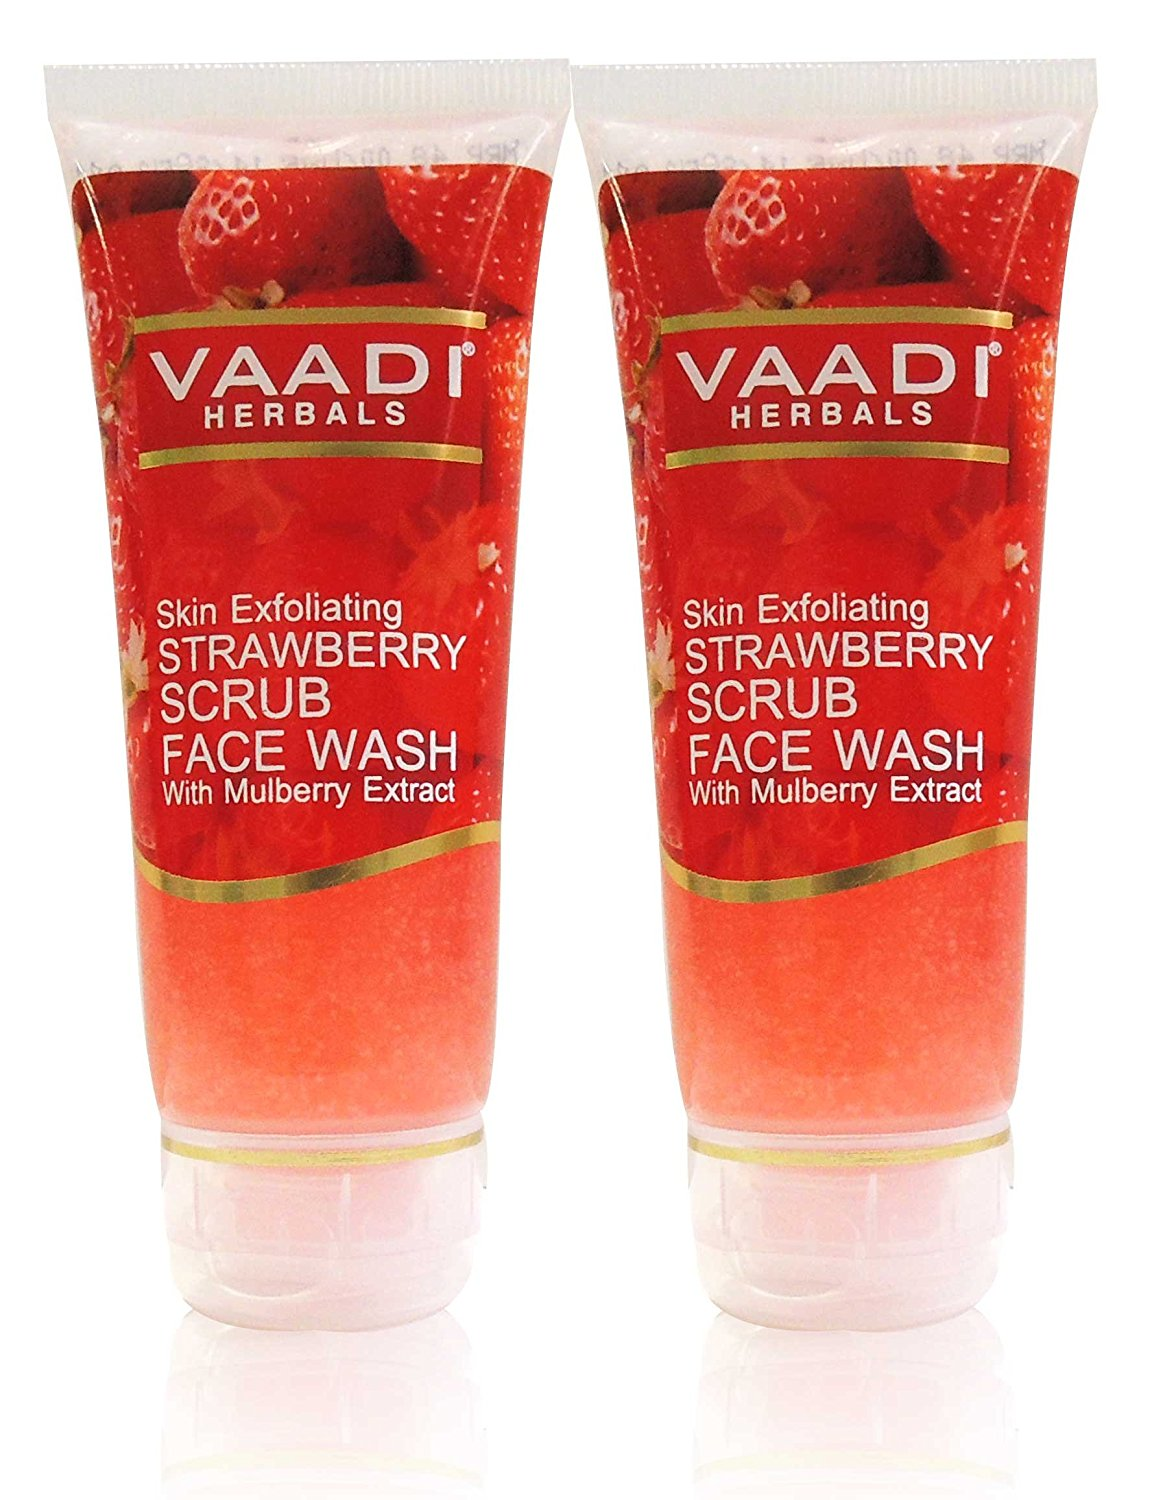 Strawberry Scrub Face Wash with Mulberry Extract - ★ ALL Natural - ★ Soothes and Moisturizes Flaky Skin. ★ Mildly Exfoliates and Lightens Skin - ★ Each 60ml - ★ Value Pack of 2 (120 Ml - 4.05 Ounces) - Vaadi Herbals